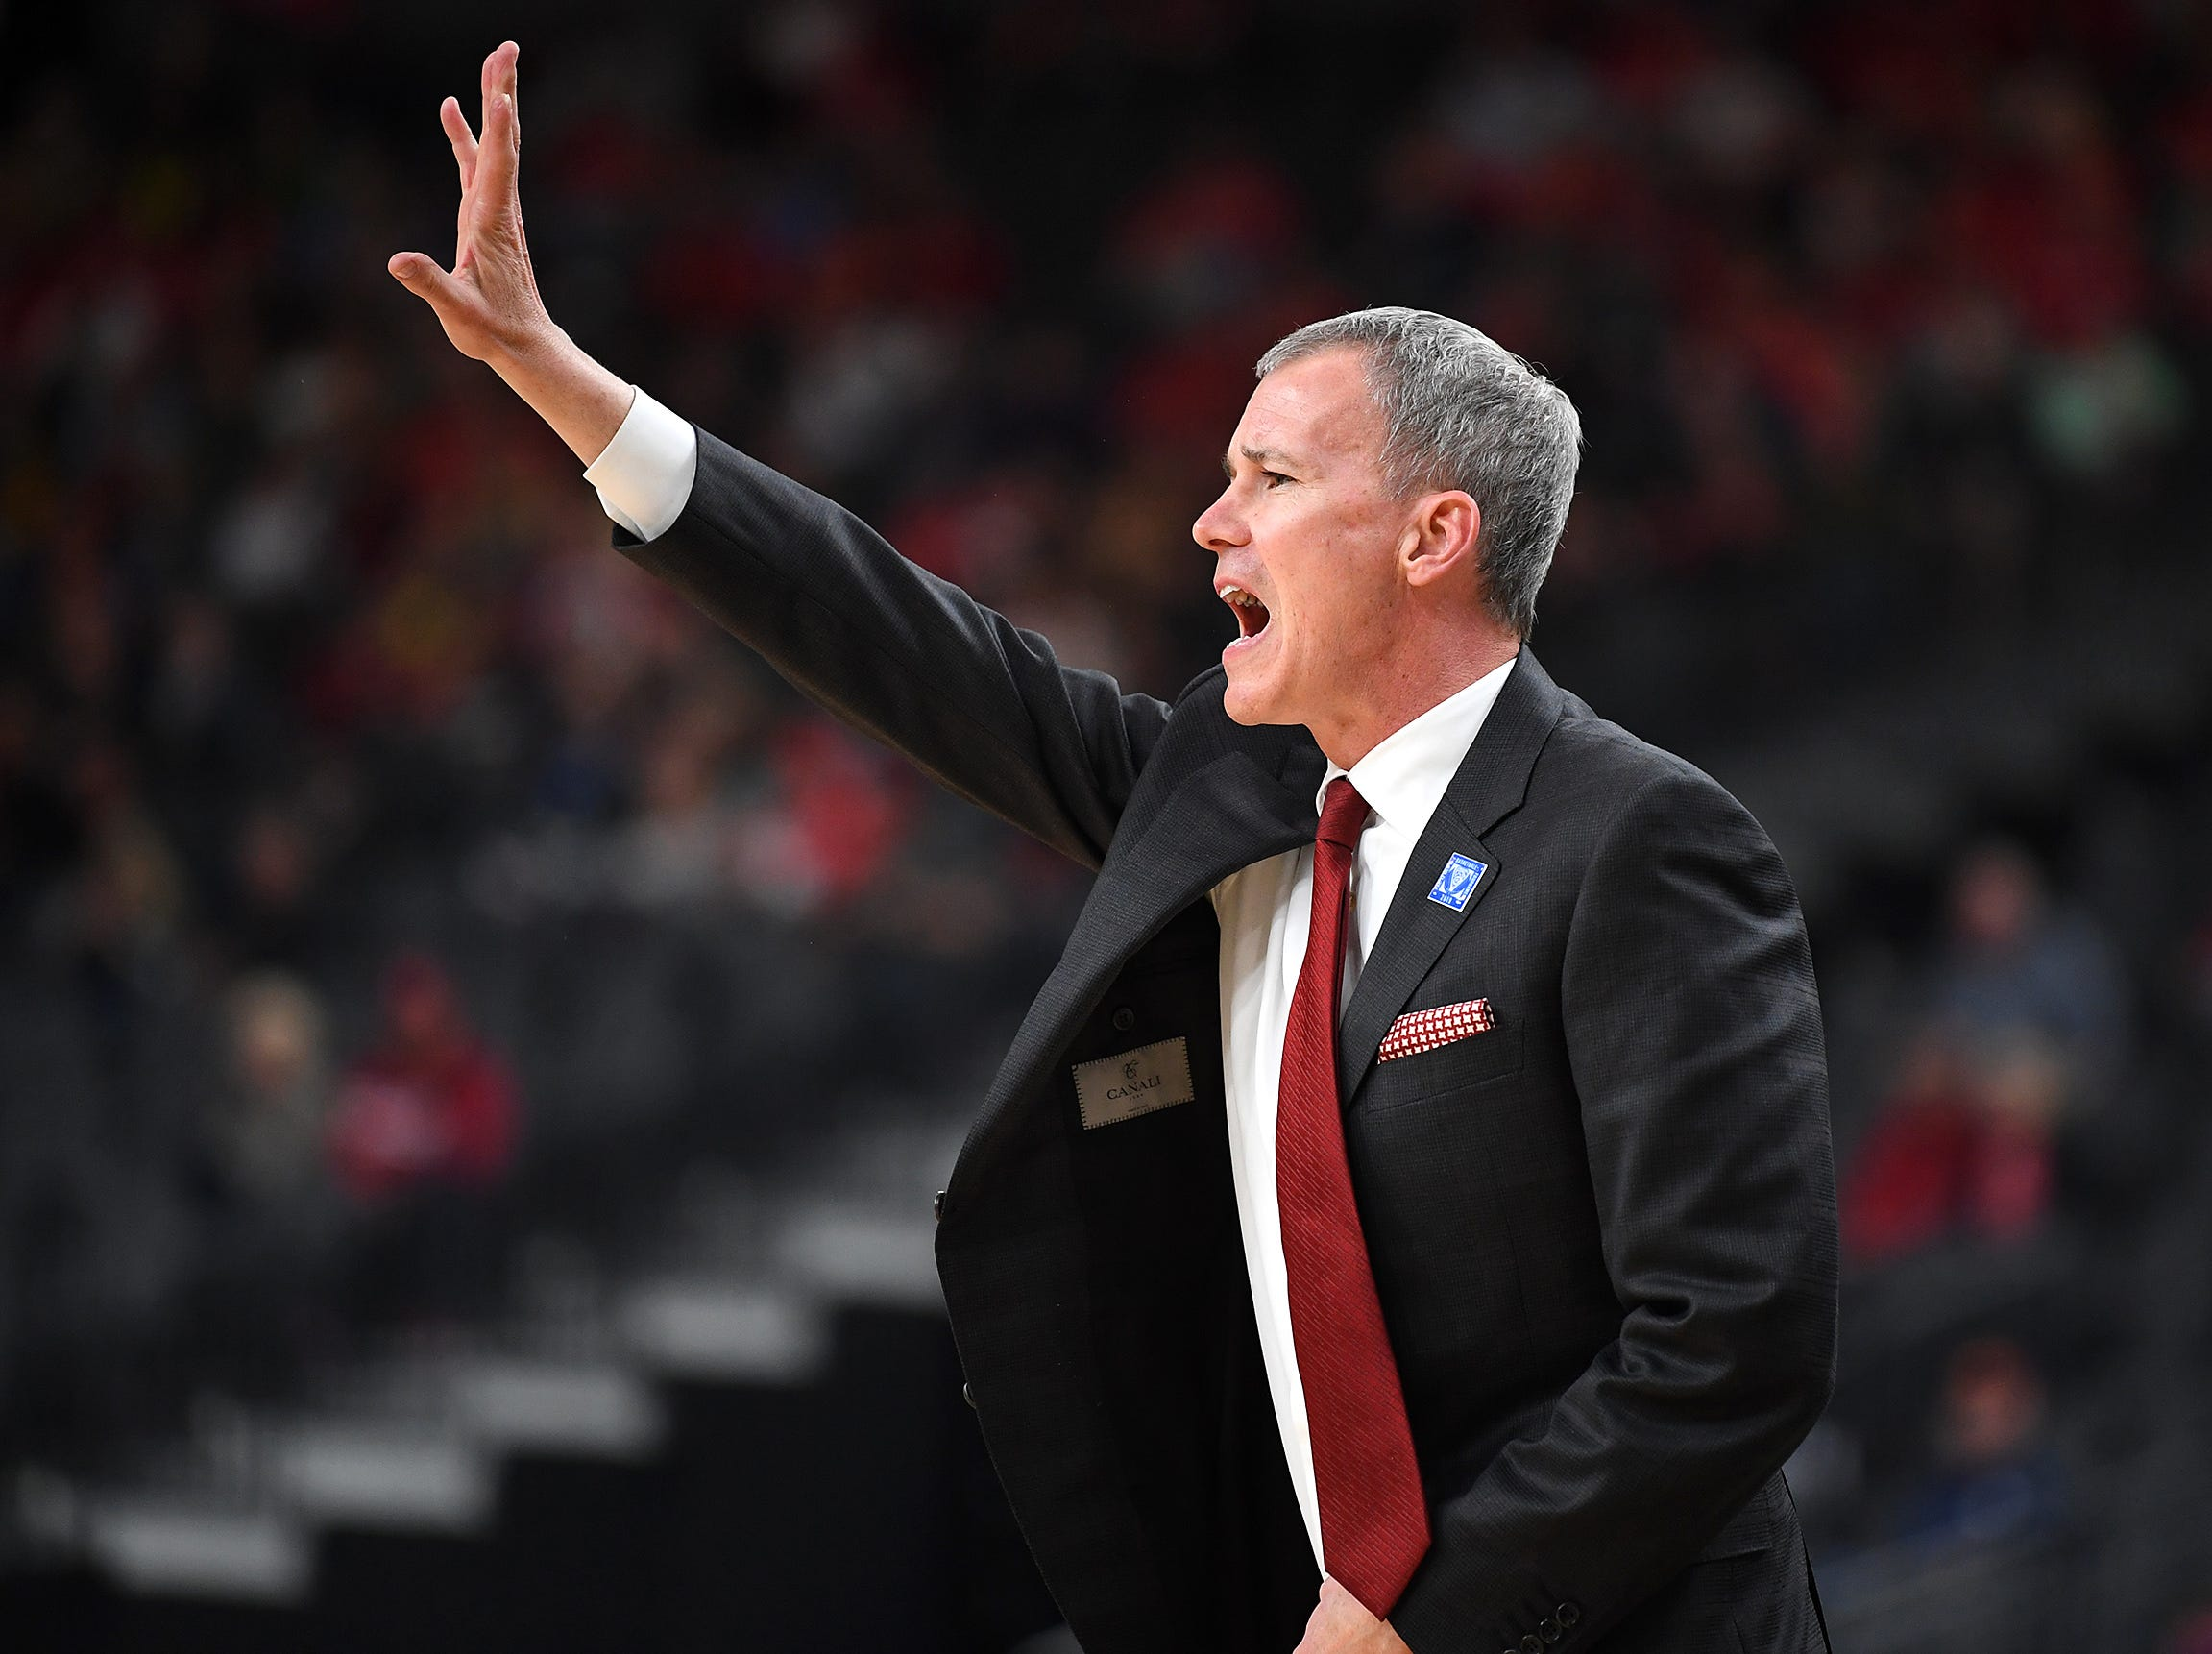 Mar 13, 2019; Las Vegas, NV, United States; USC Trojans head coach Andy Enfield calls a play during the first half against the Arizona Wildcats in a Pac-12 conference tournament game at T-Mobile Arena. Mandatory Credit: Stephen R. Sylvanie-USA TODAY Sports